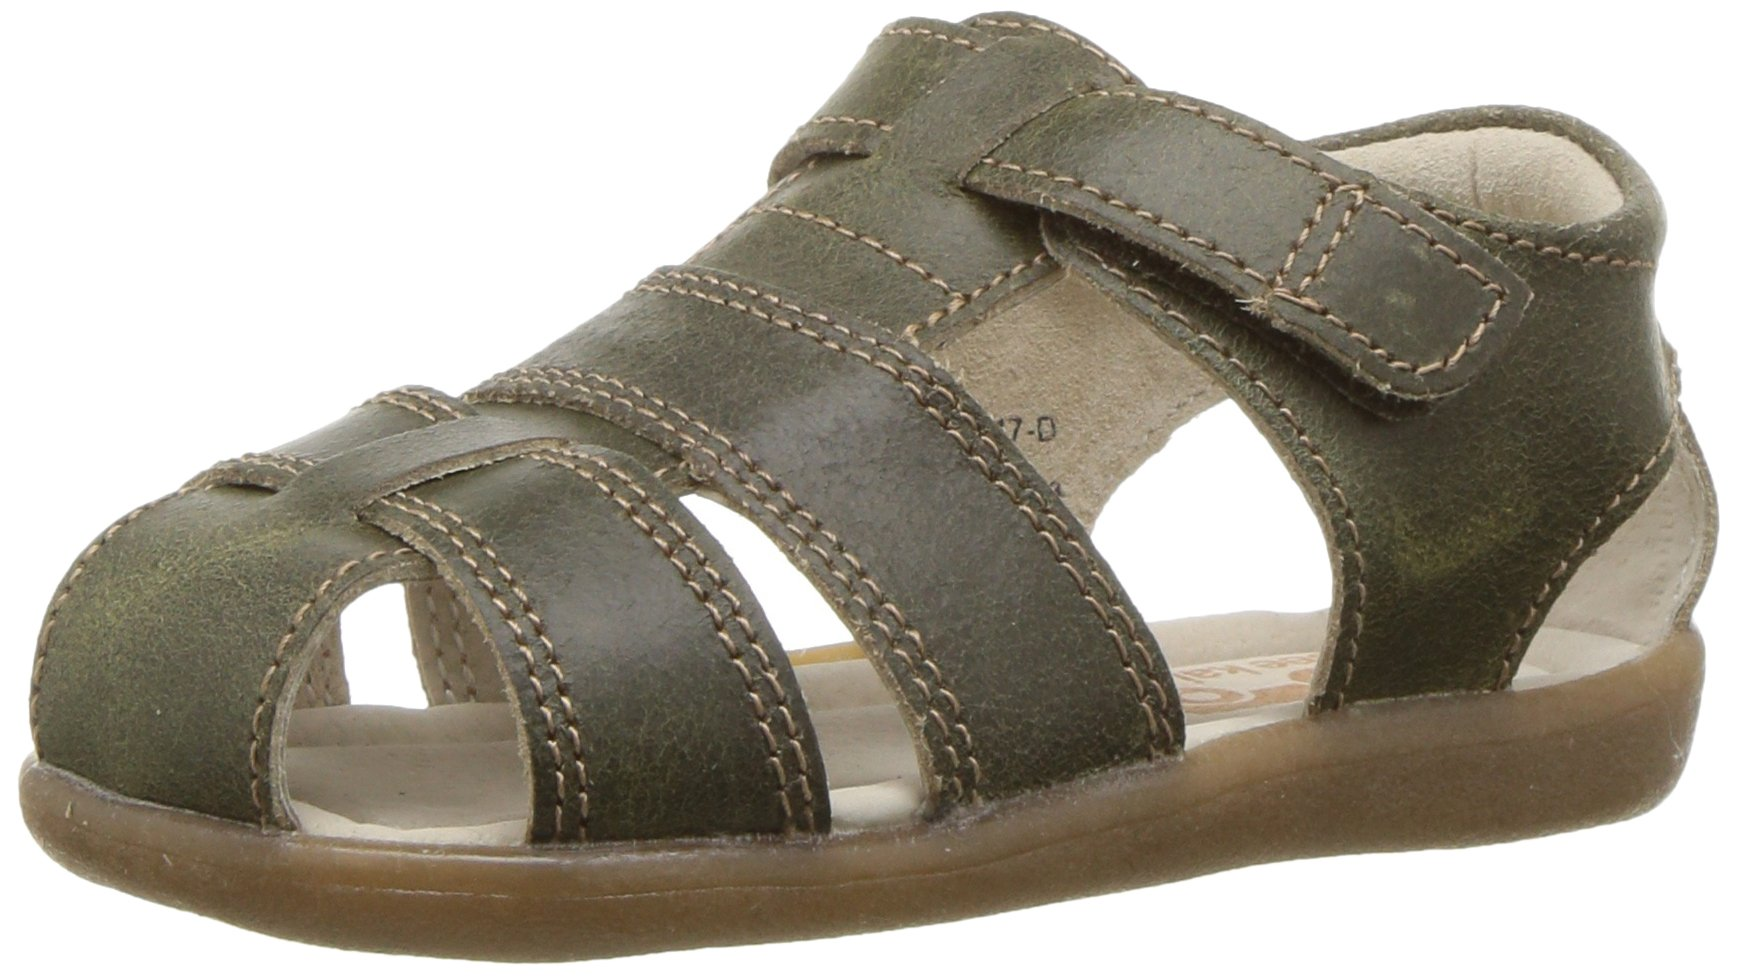 See Kai Run Boys' Jude III Fisherman Sandal, Olive, 6 M US Toddler by See Kai Run